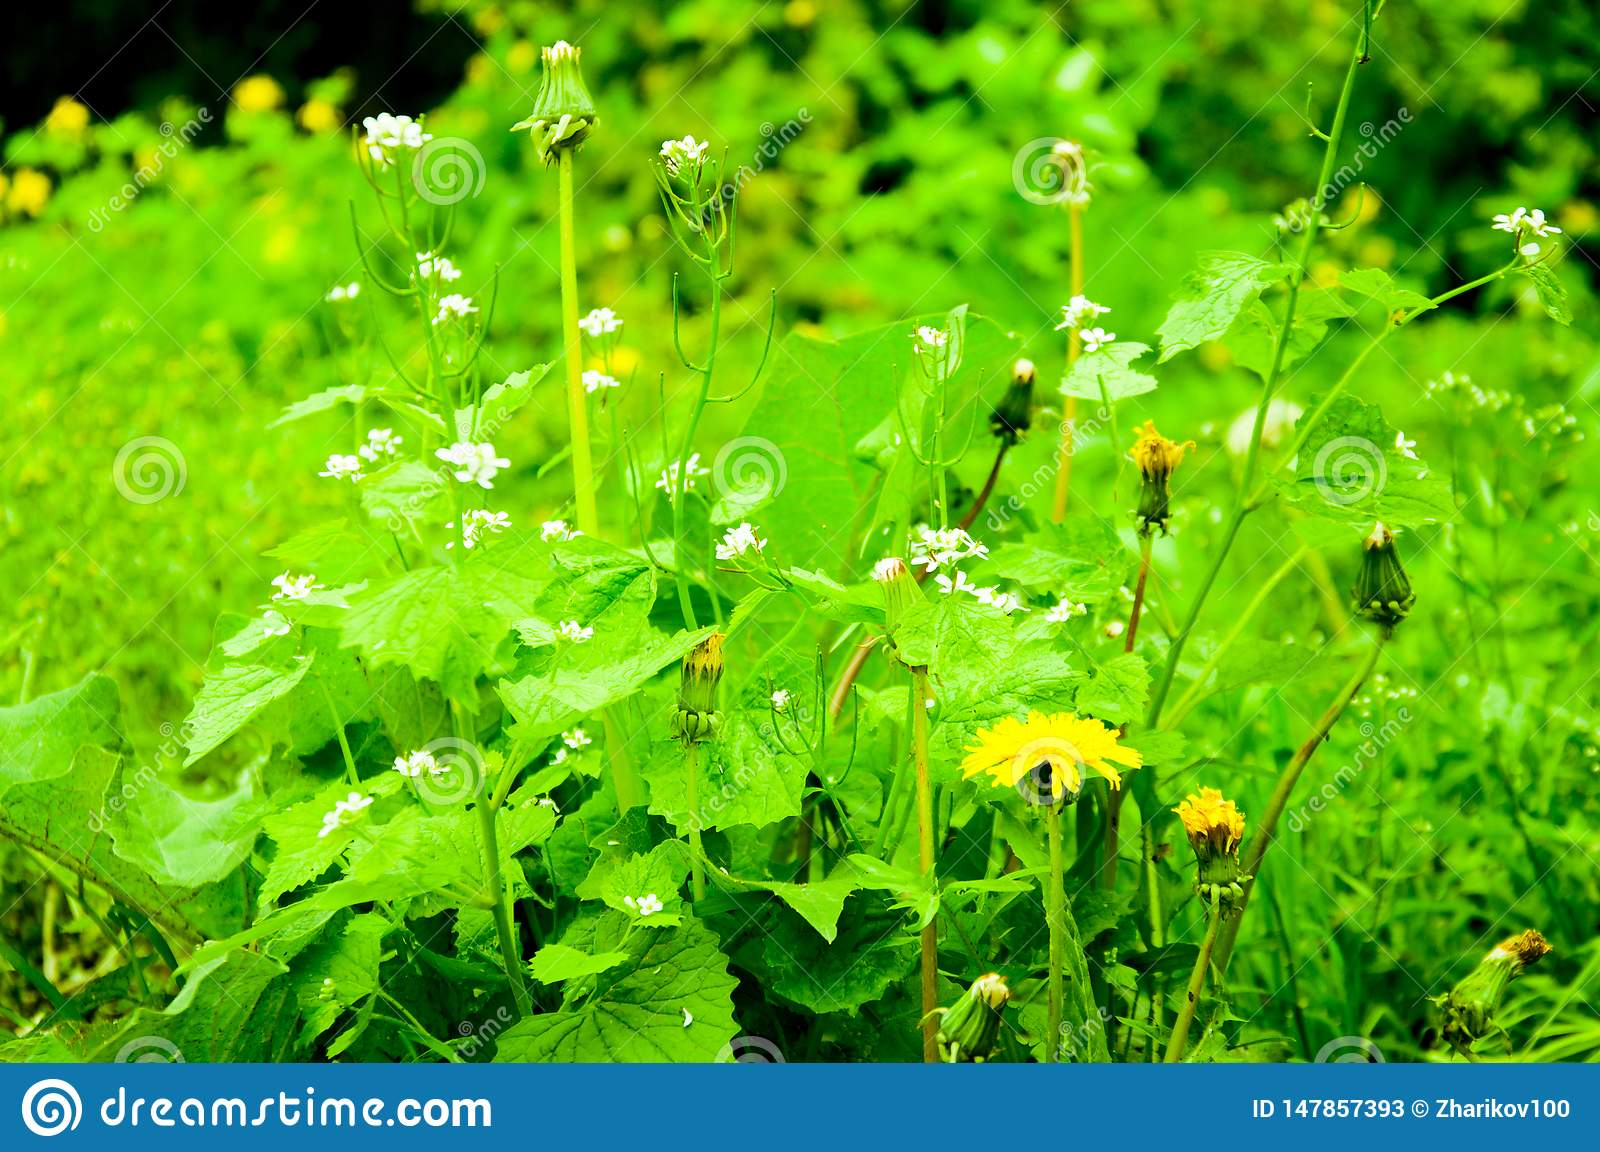 Bright Green Plants On The Lawn Stock Image Image Of Vegetable Flowers 147857393